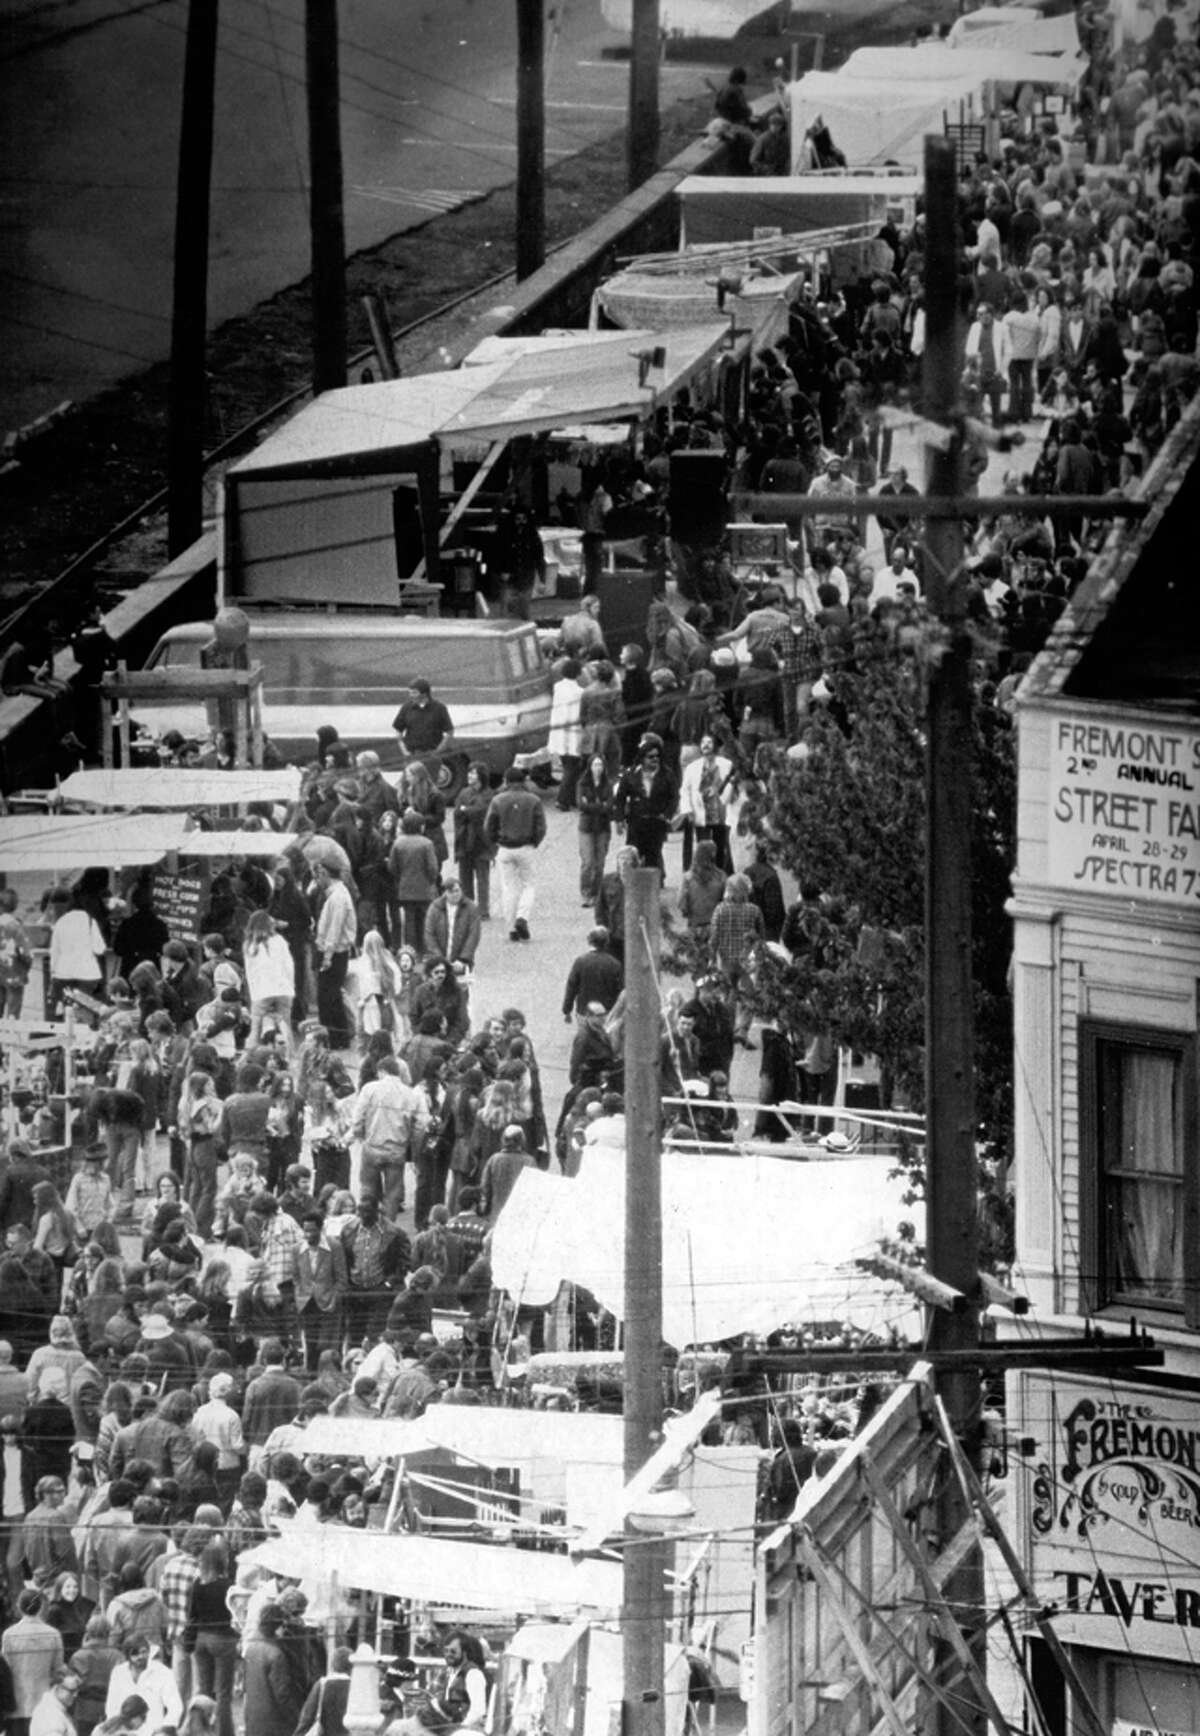 1973: The Fremont Fair is shown on April 28, 1973. The Solstice Parade began as an annual event in 1989.